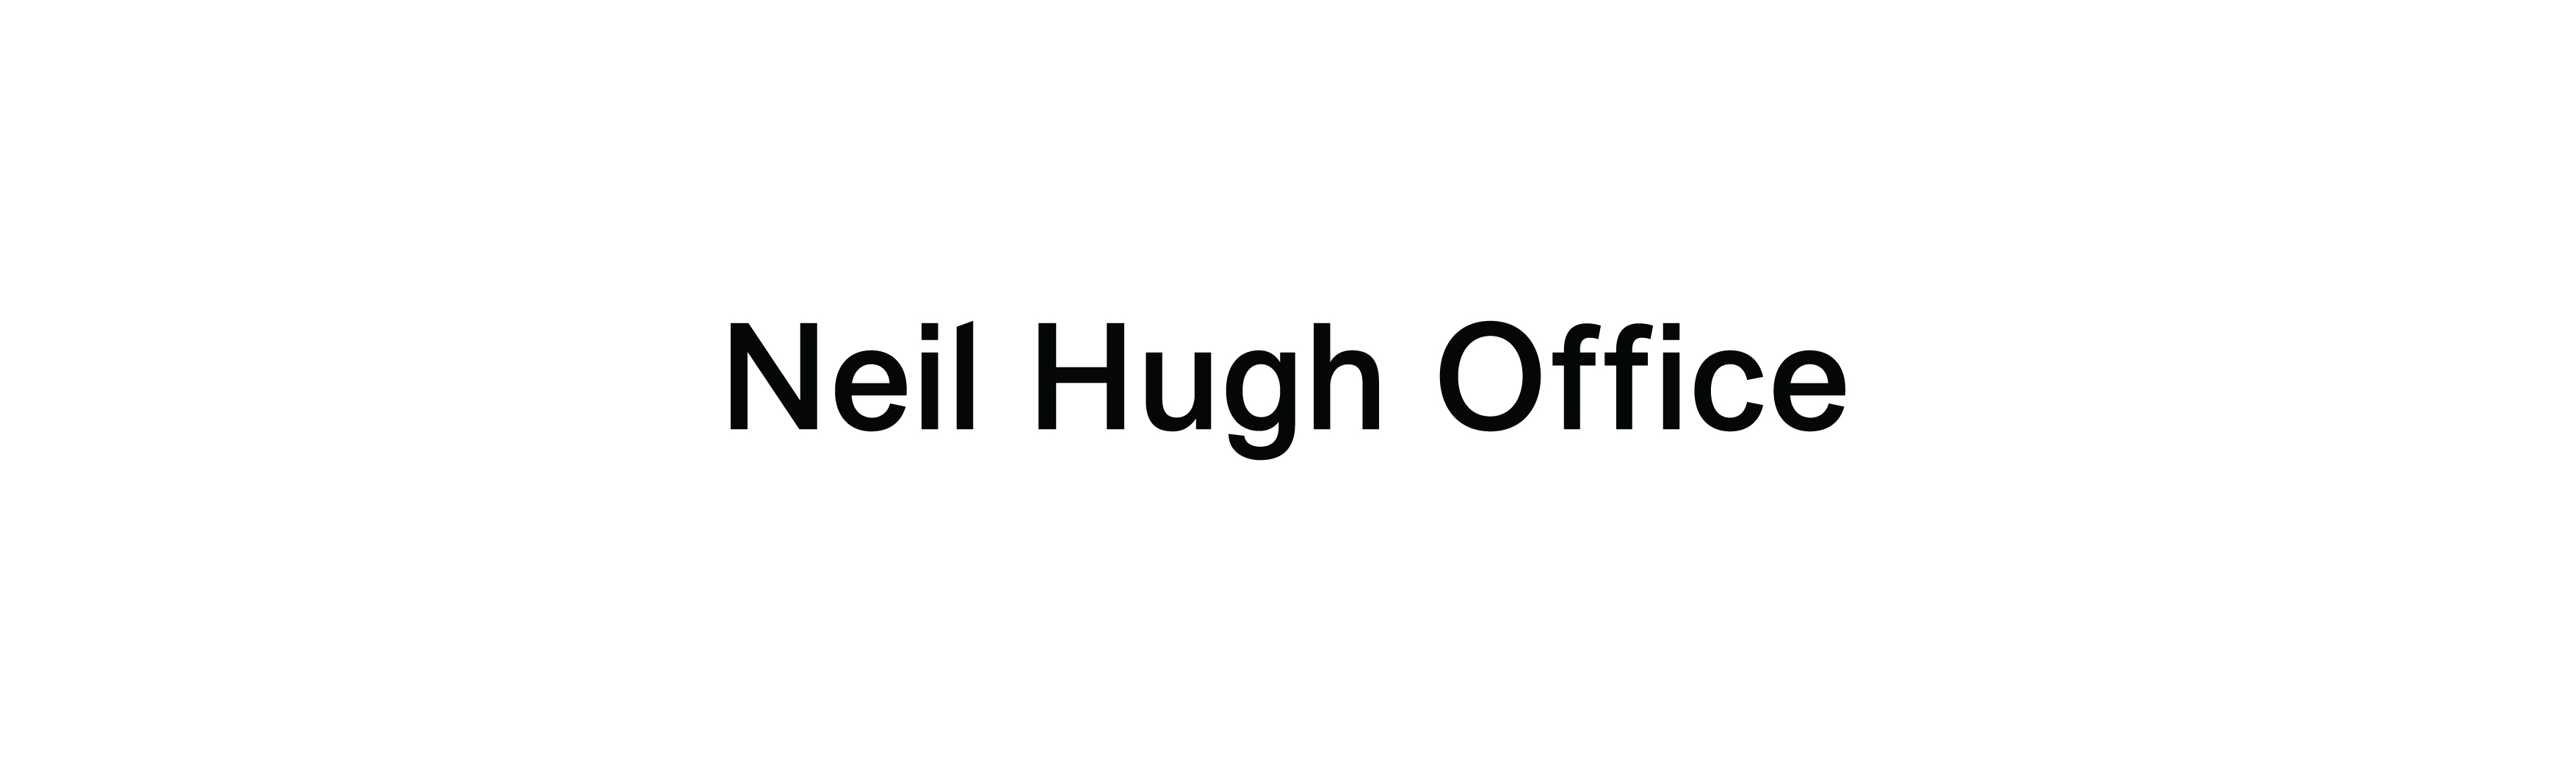 Neil Hugh Office